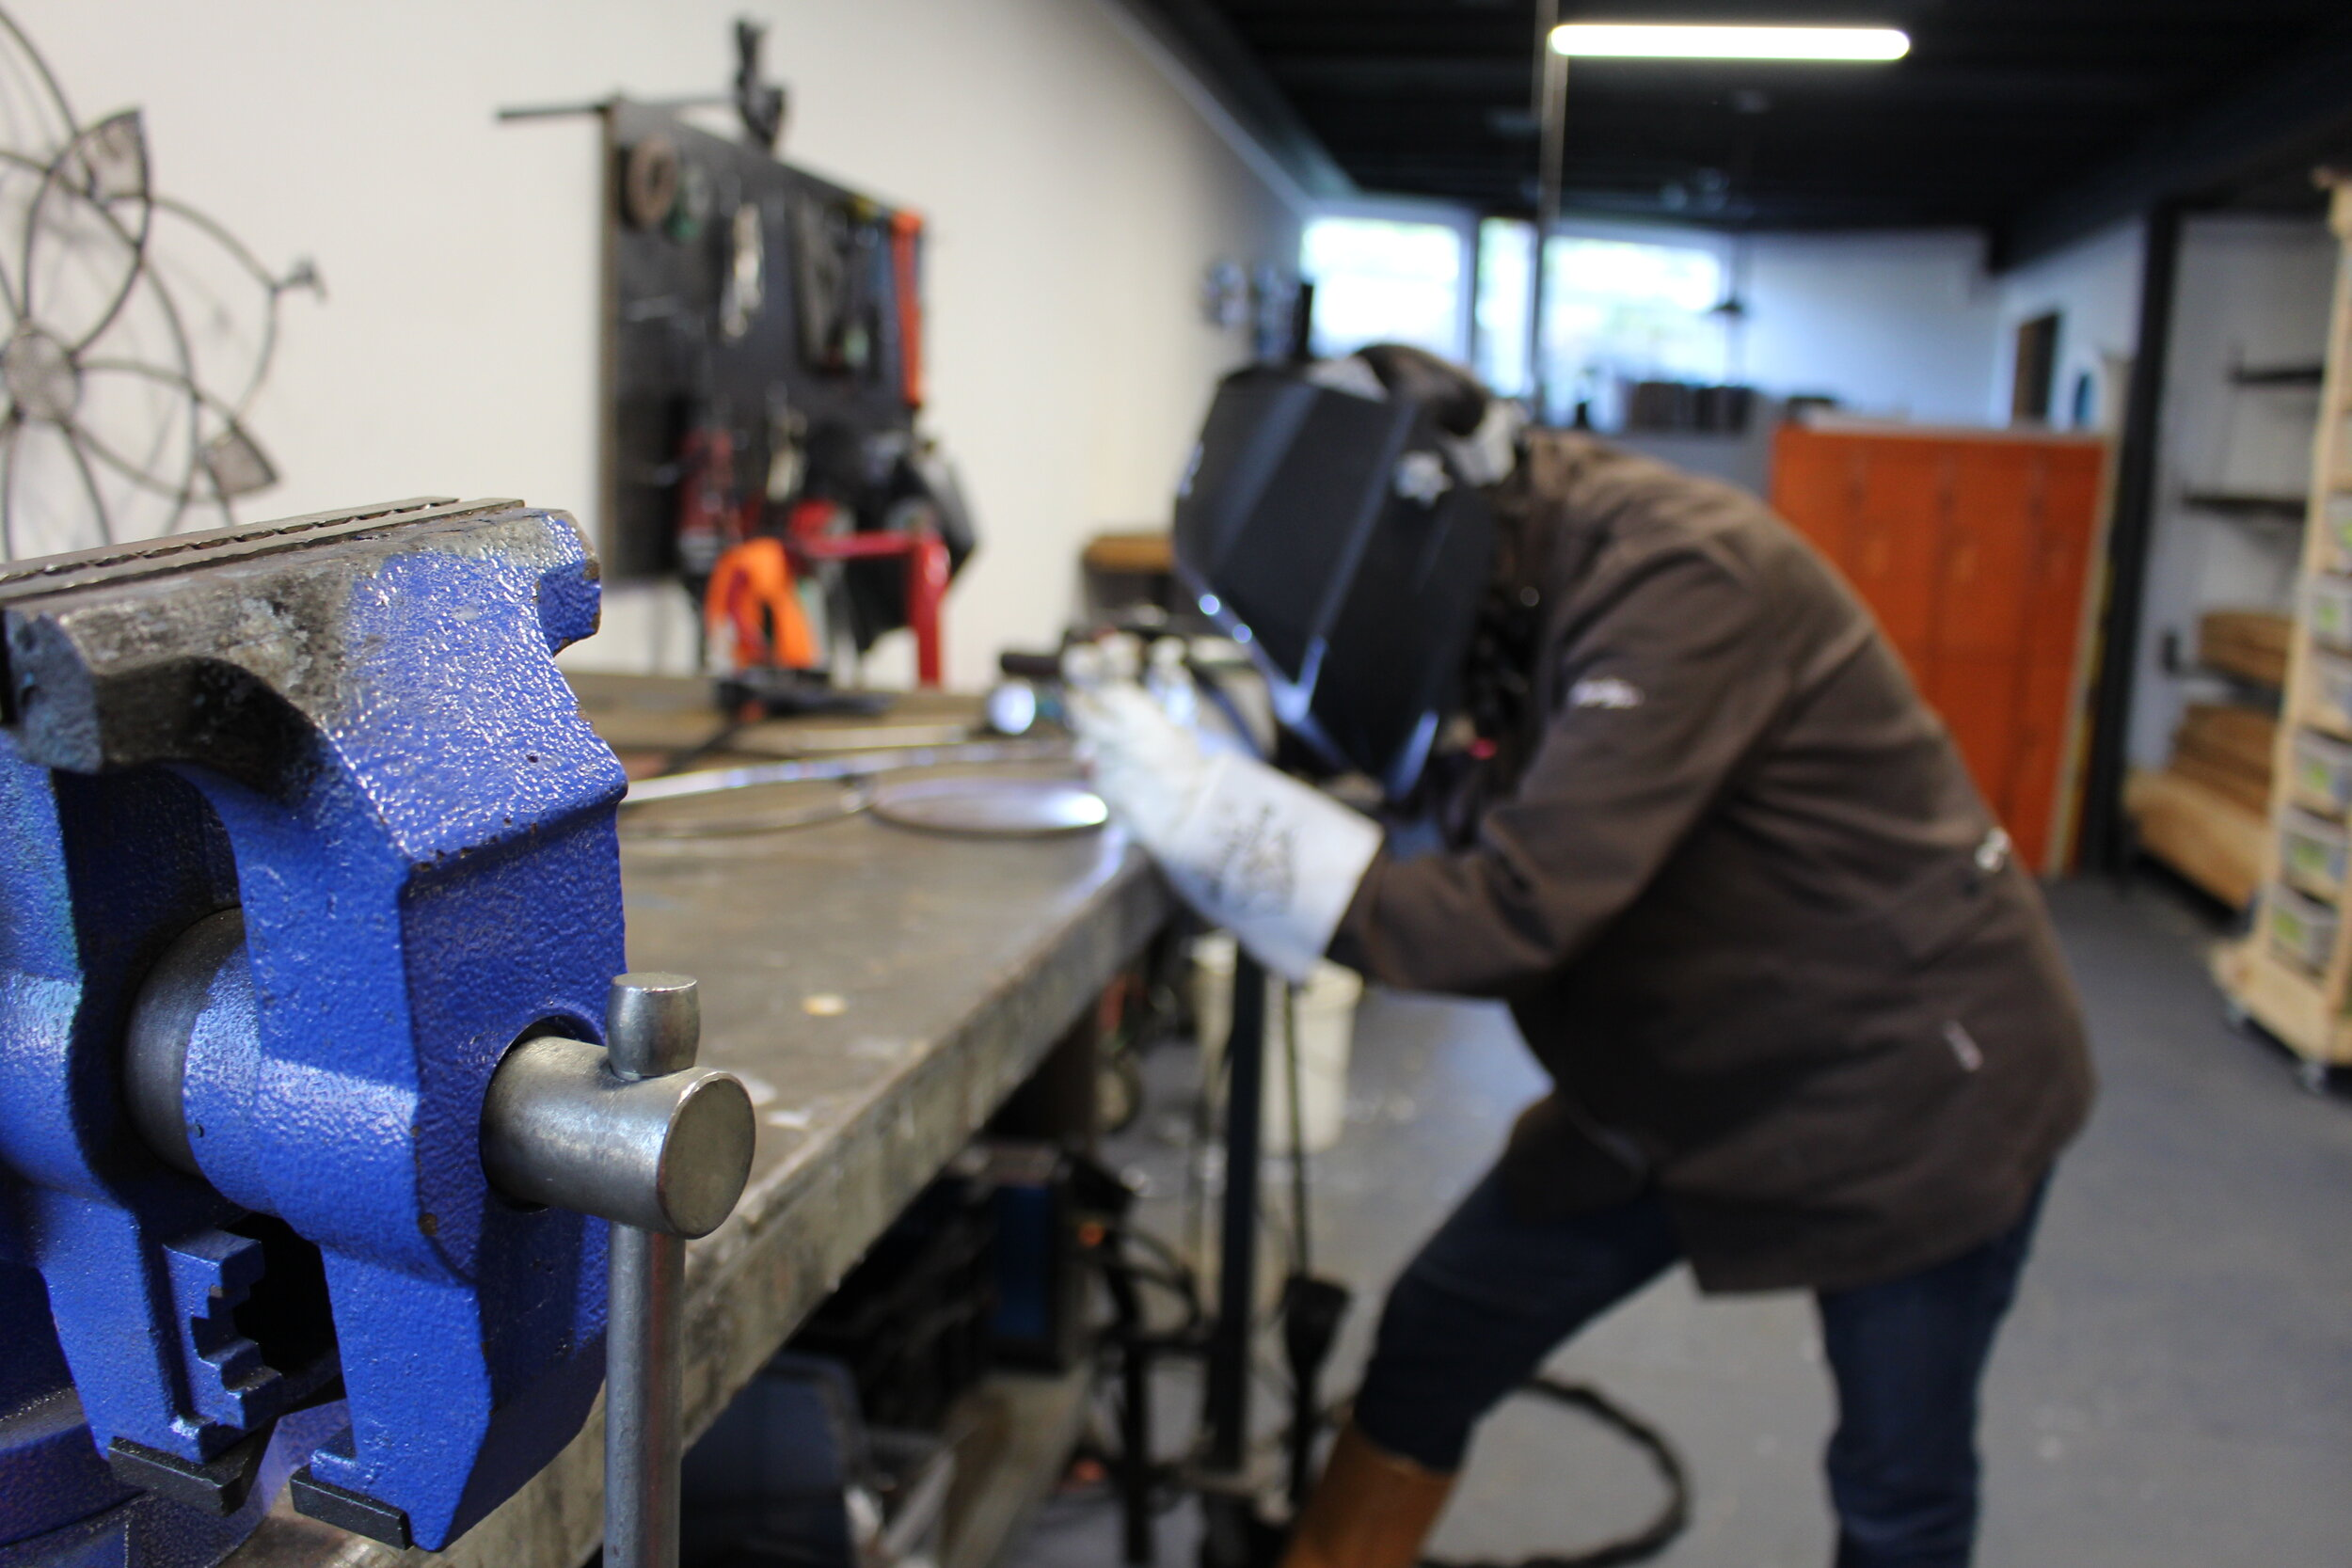 Learn TIG welding with a one-on-one project! - Schedule with us to book an appointment